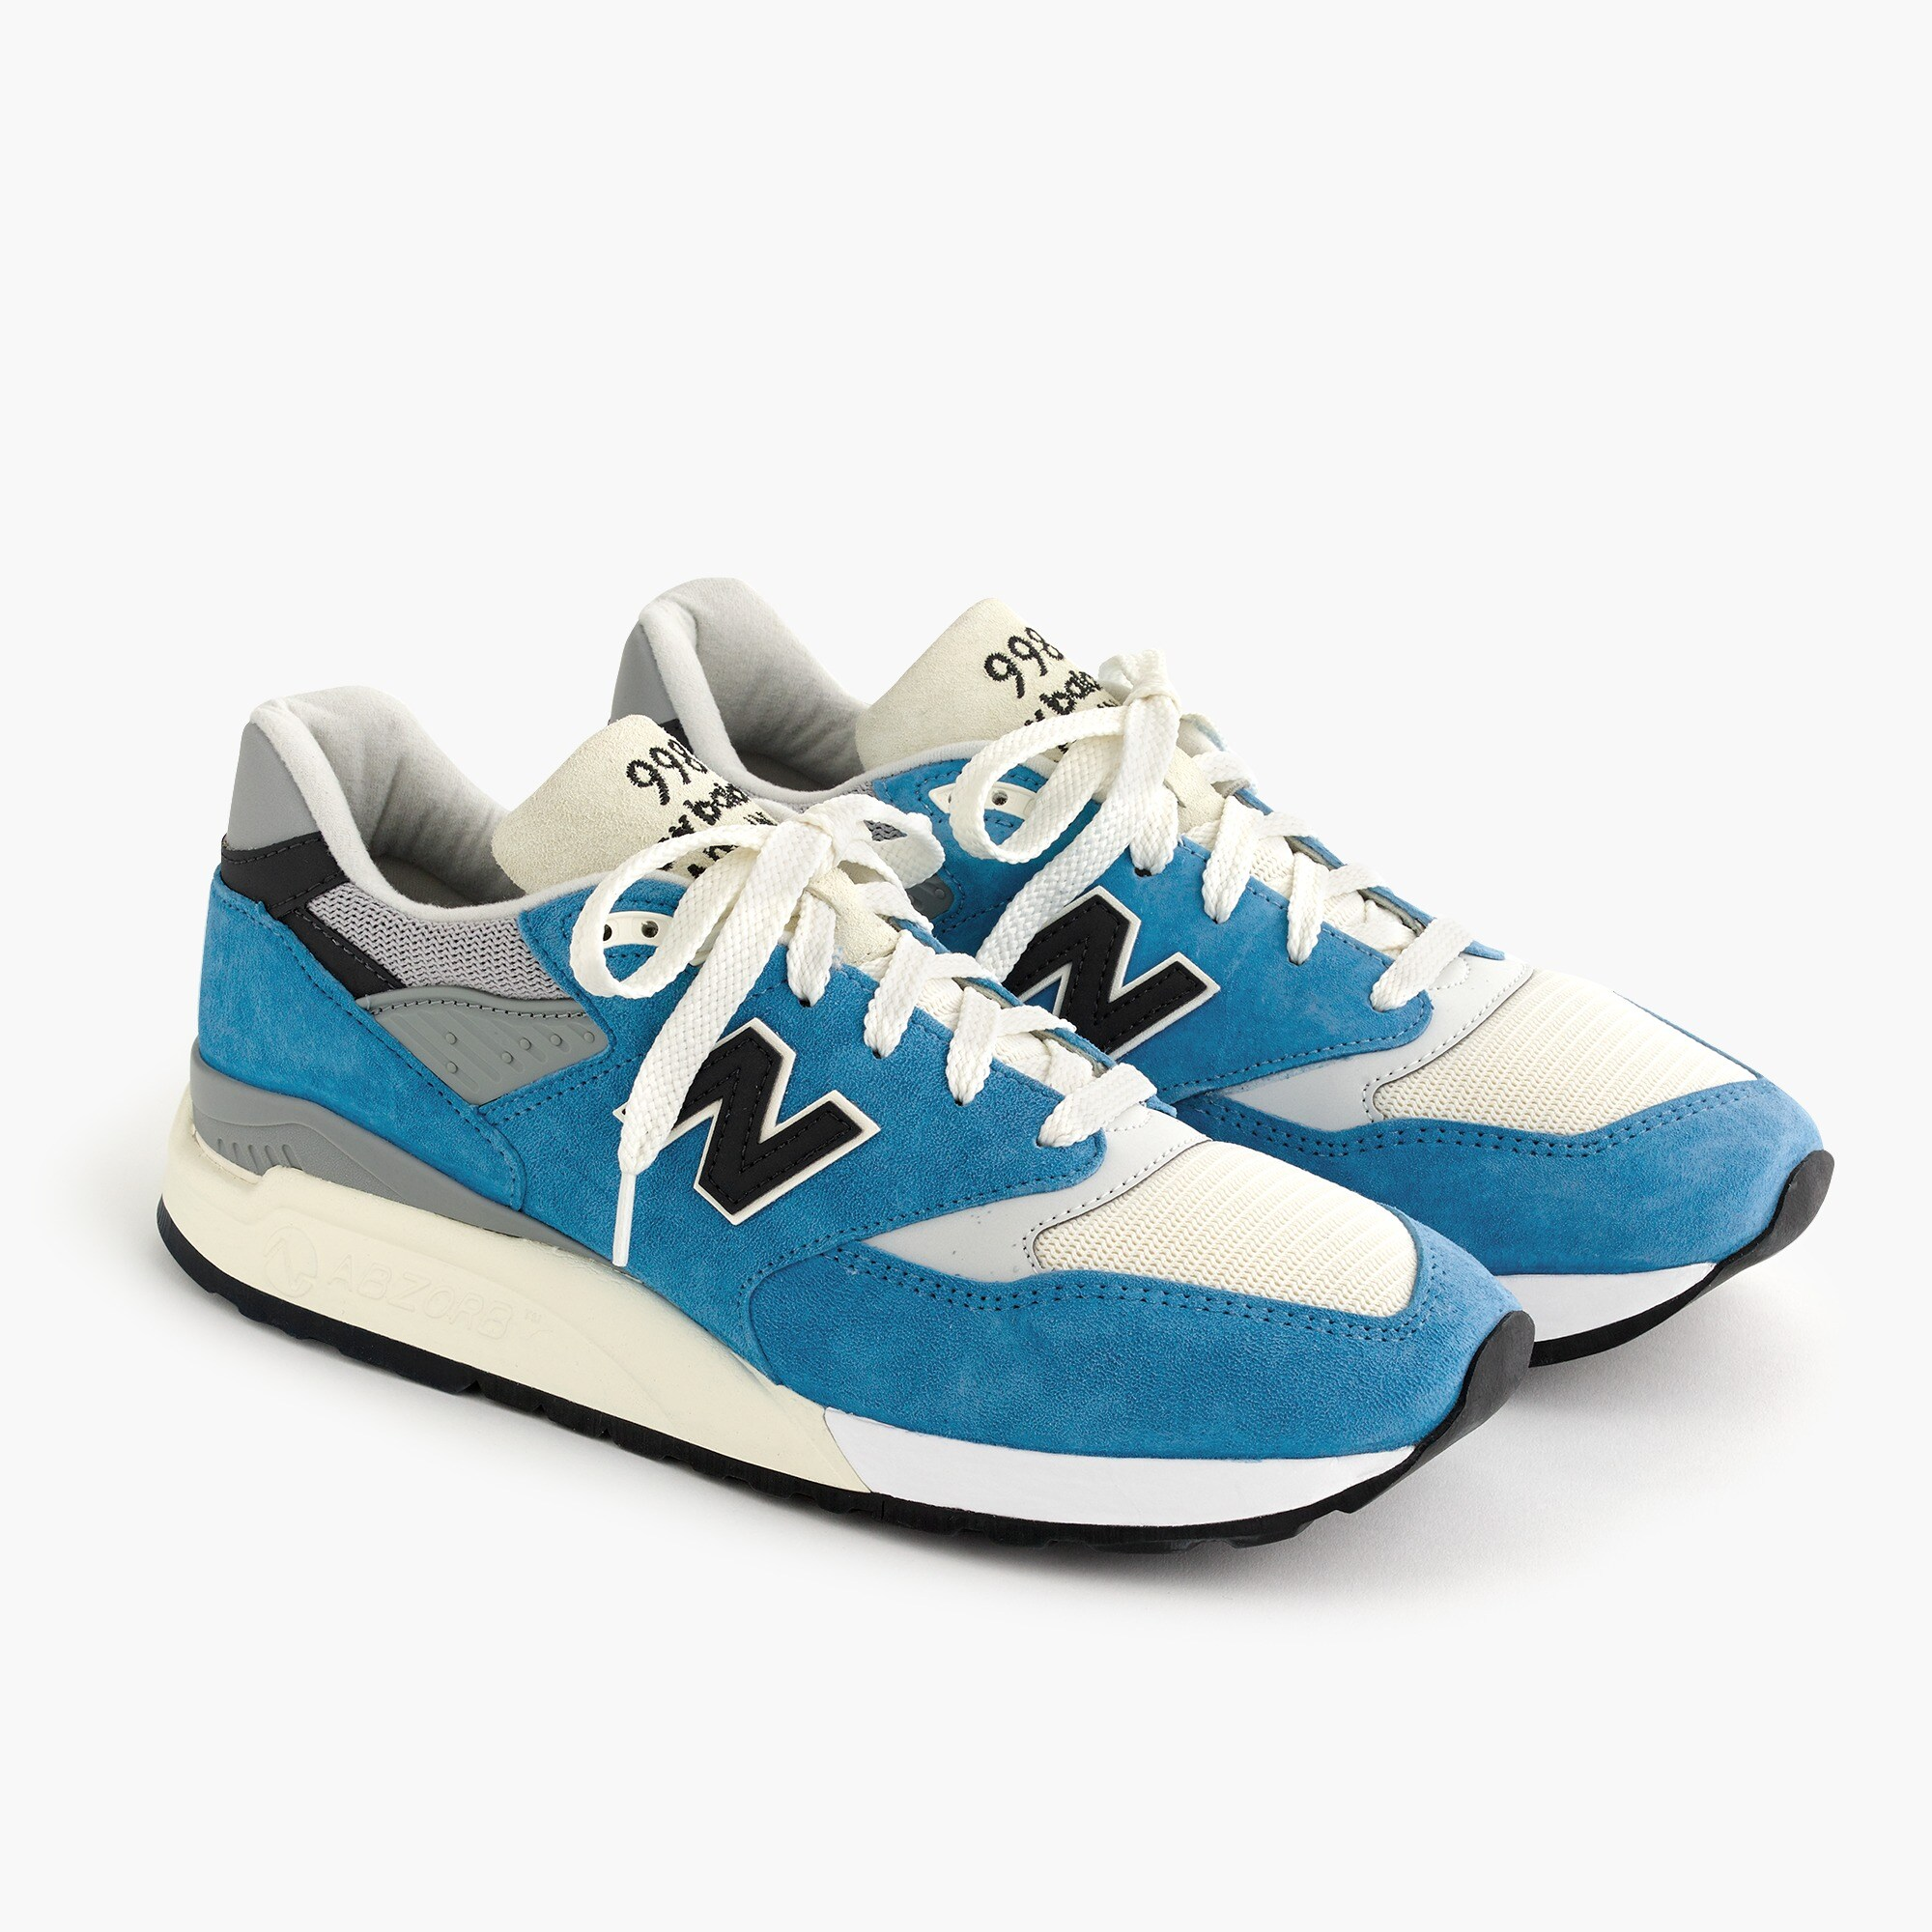 Image 4 for New Balance® for J.Crew 998 sneakers in bright blue